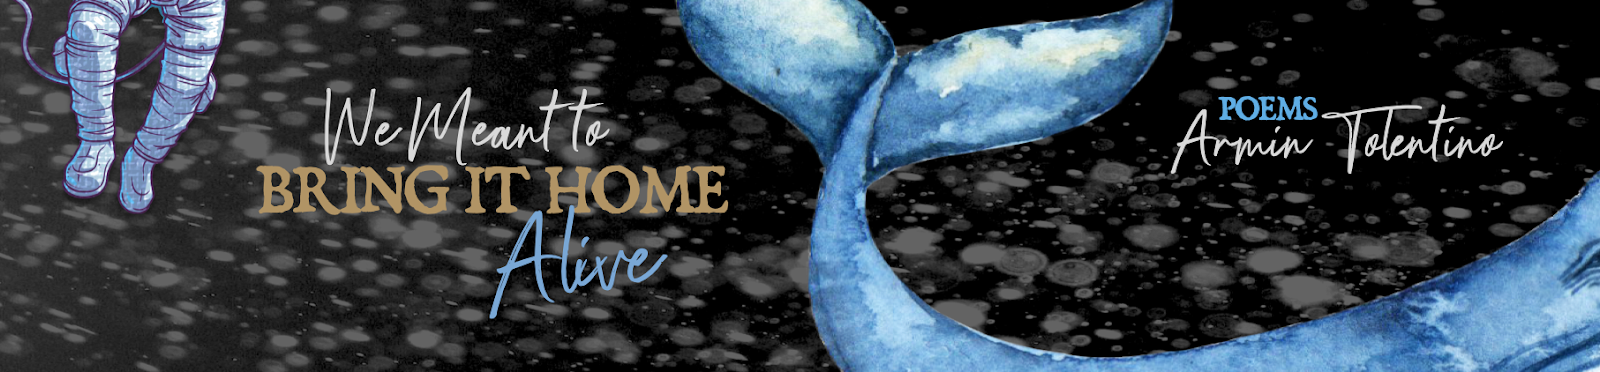 We Meant to Bring It Home Alive header banner